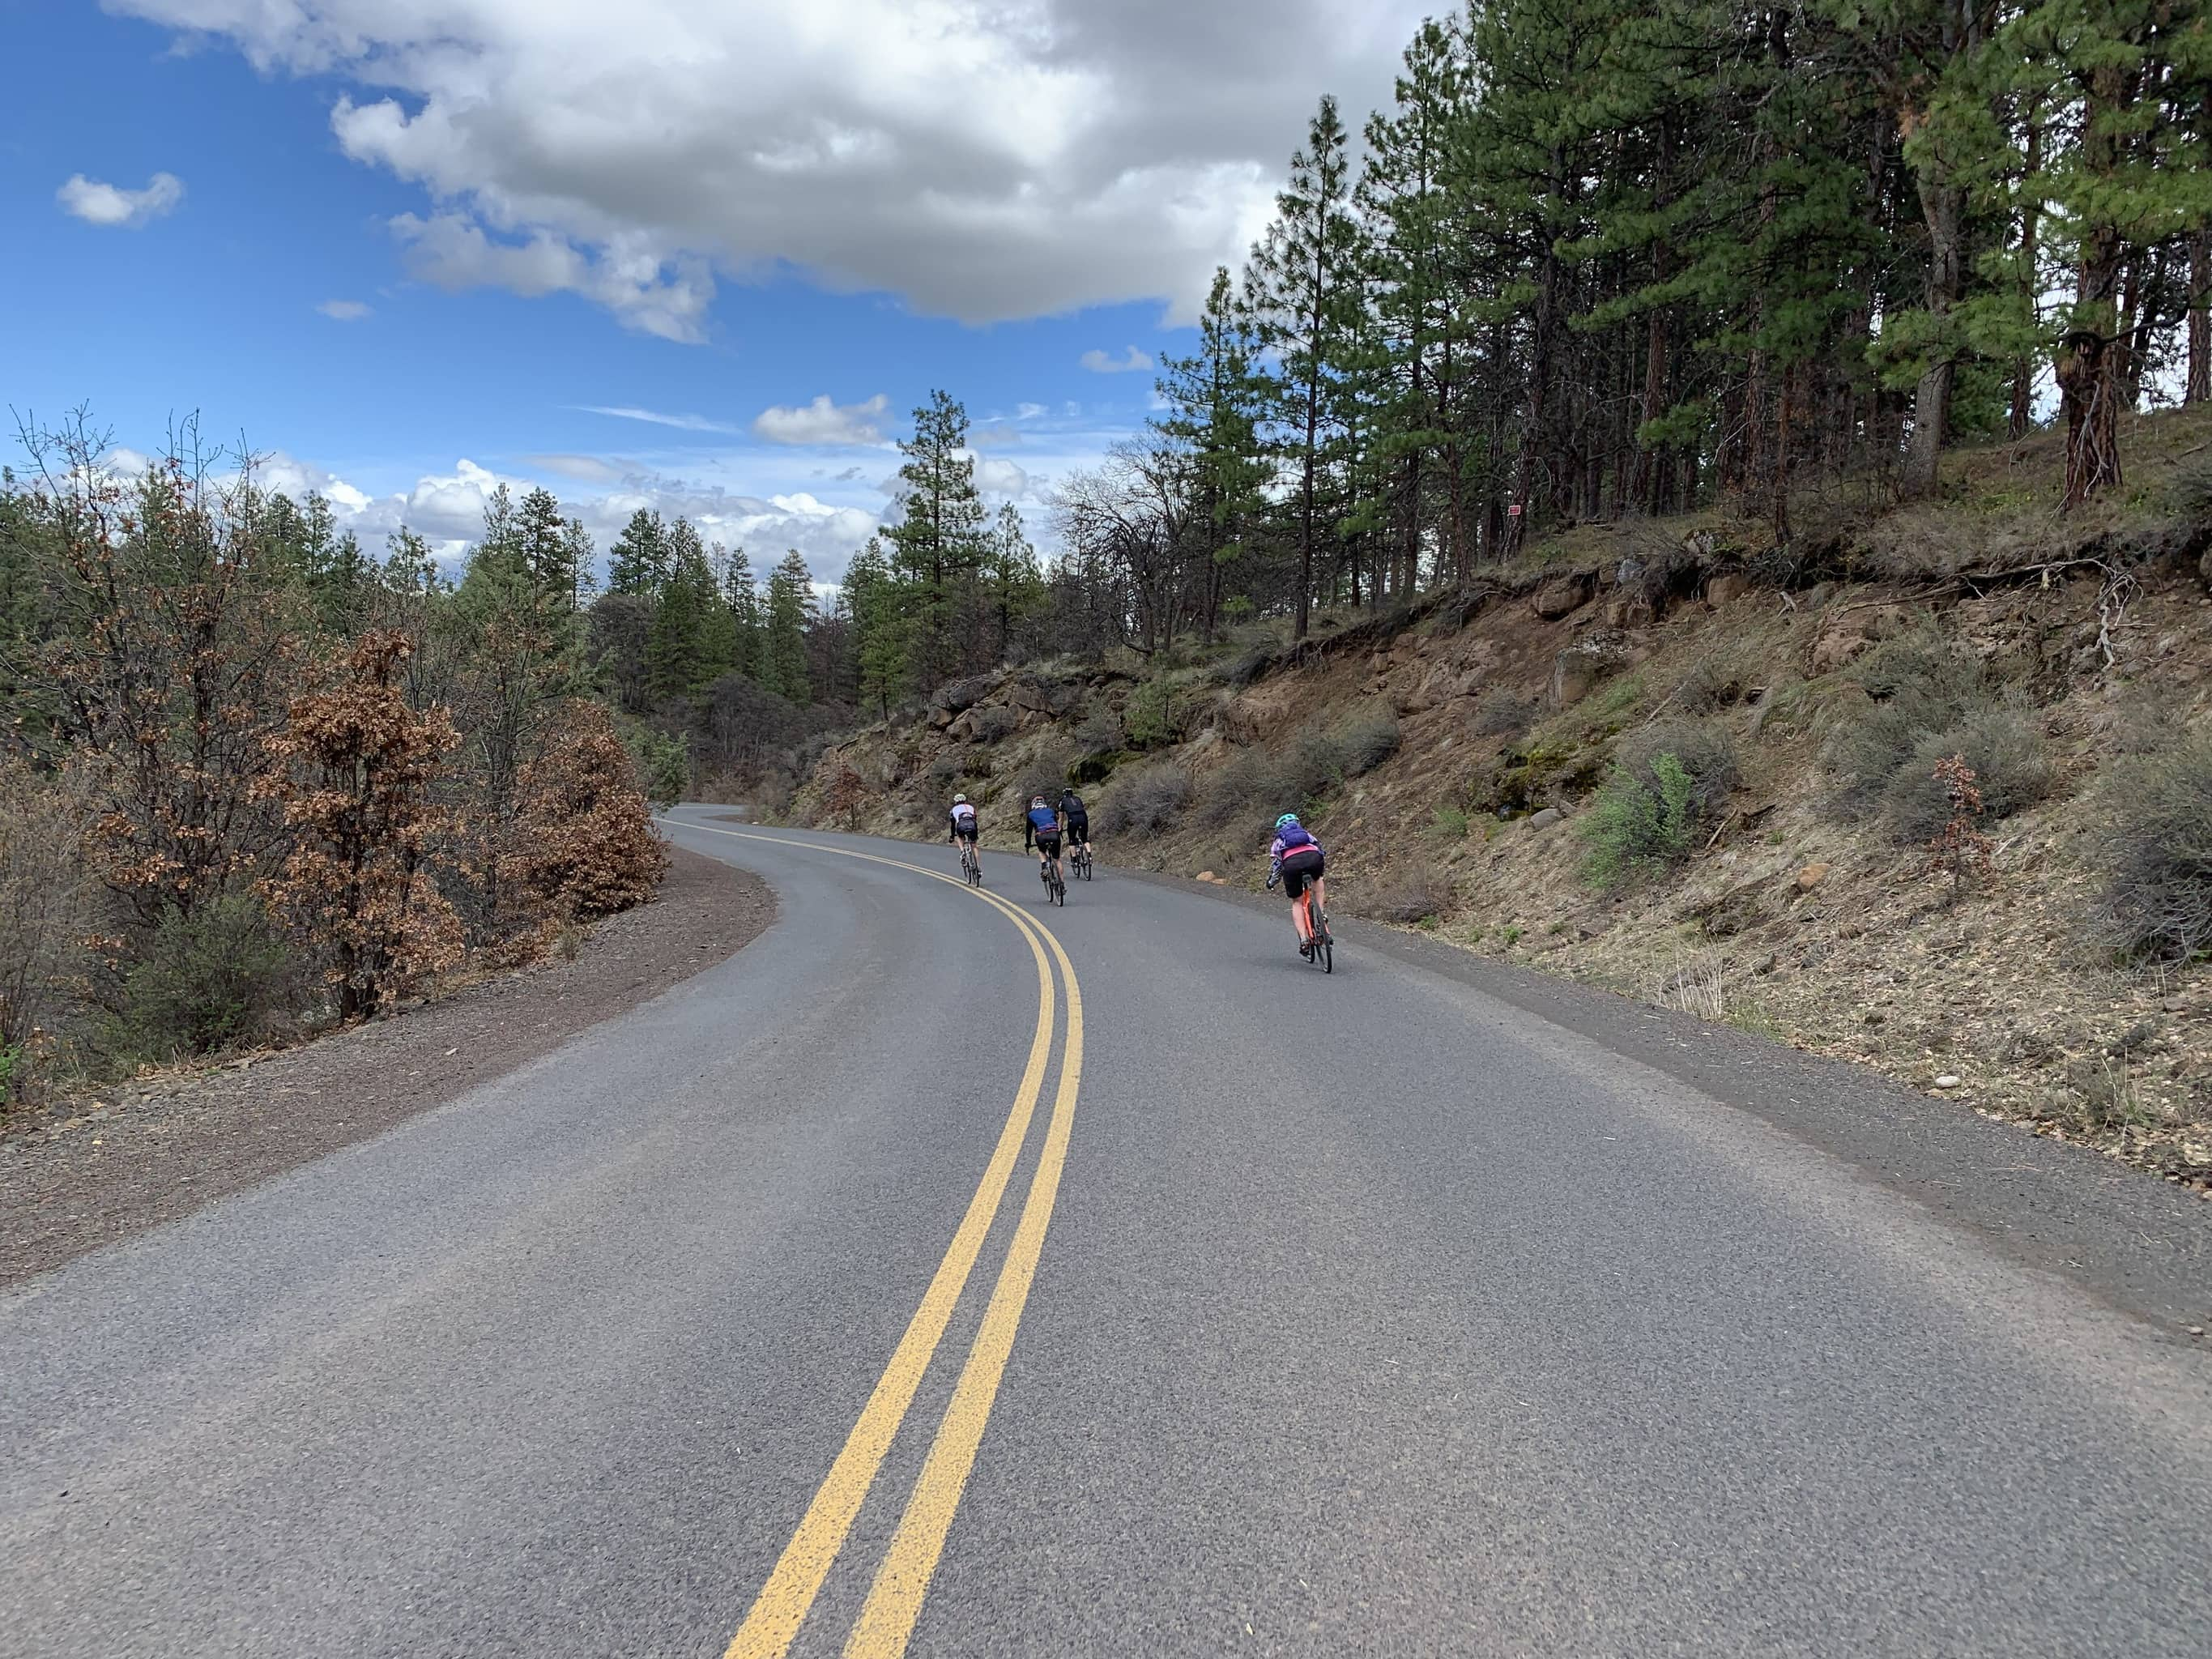 Cyclists on paved descent into Wamic, Oregon.